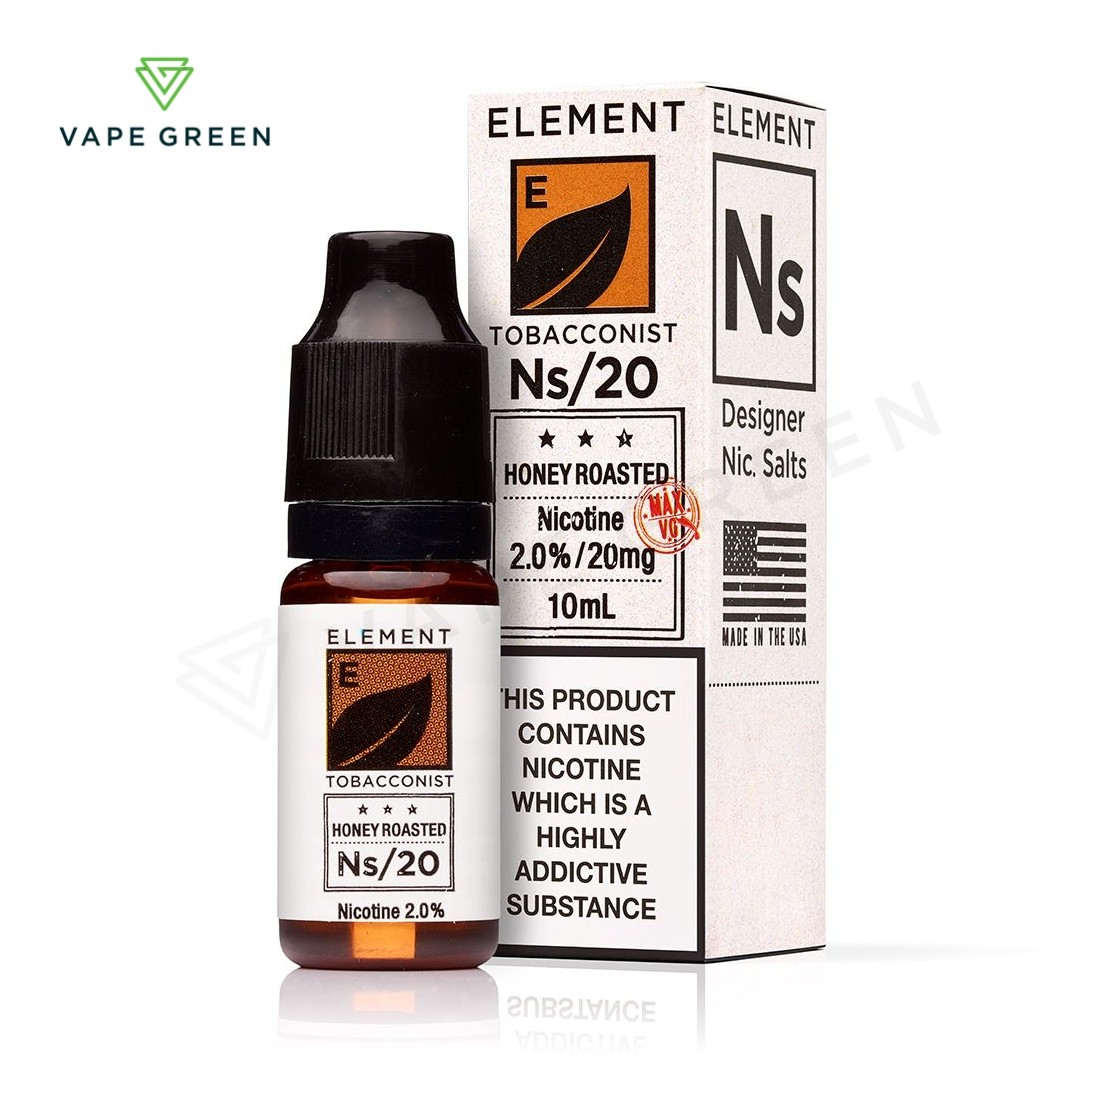 Honey Roasted Tobacco E-liquid by Element NS10 & NS20